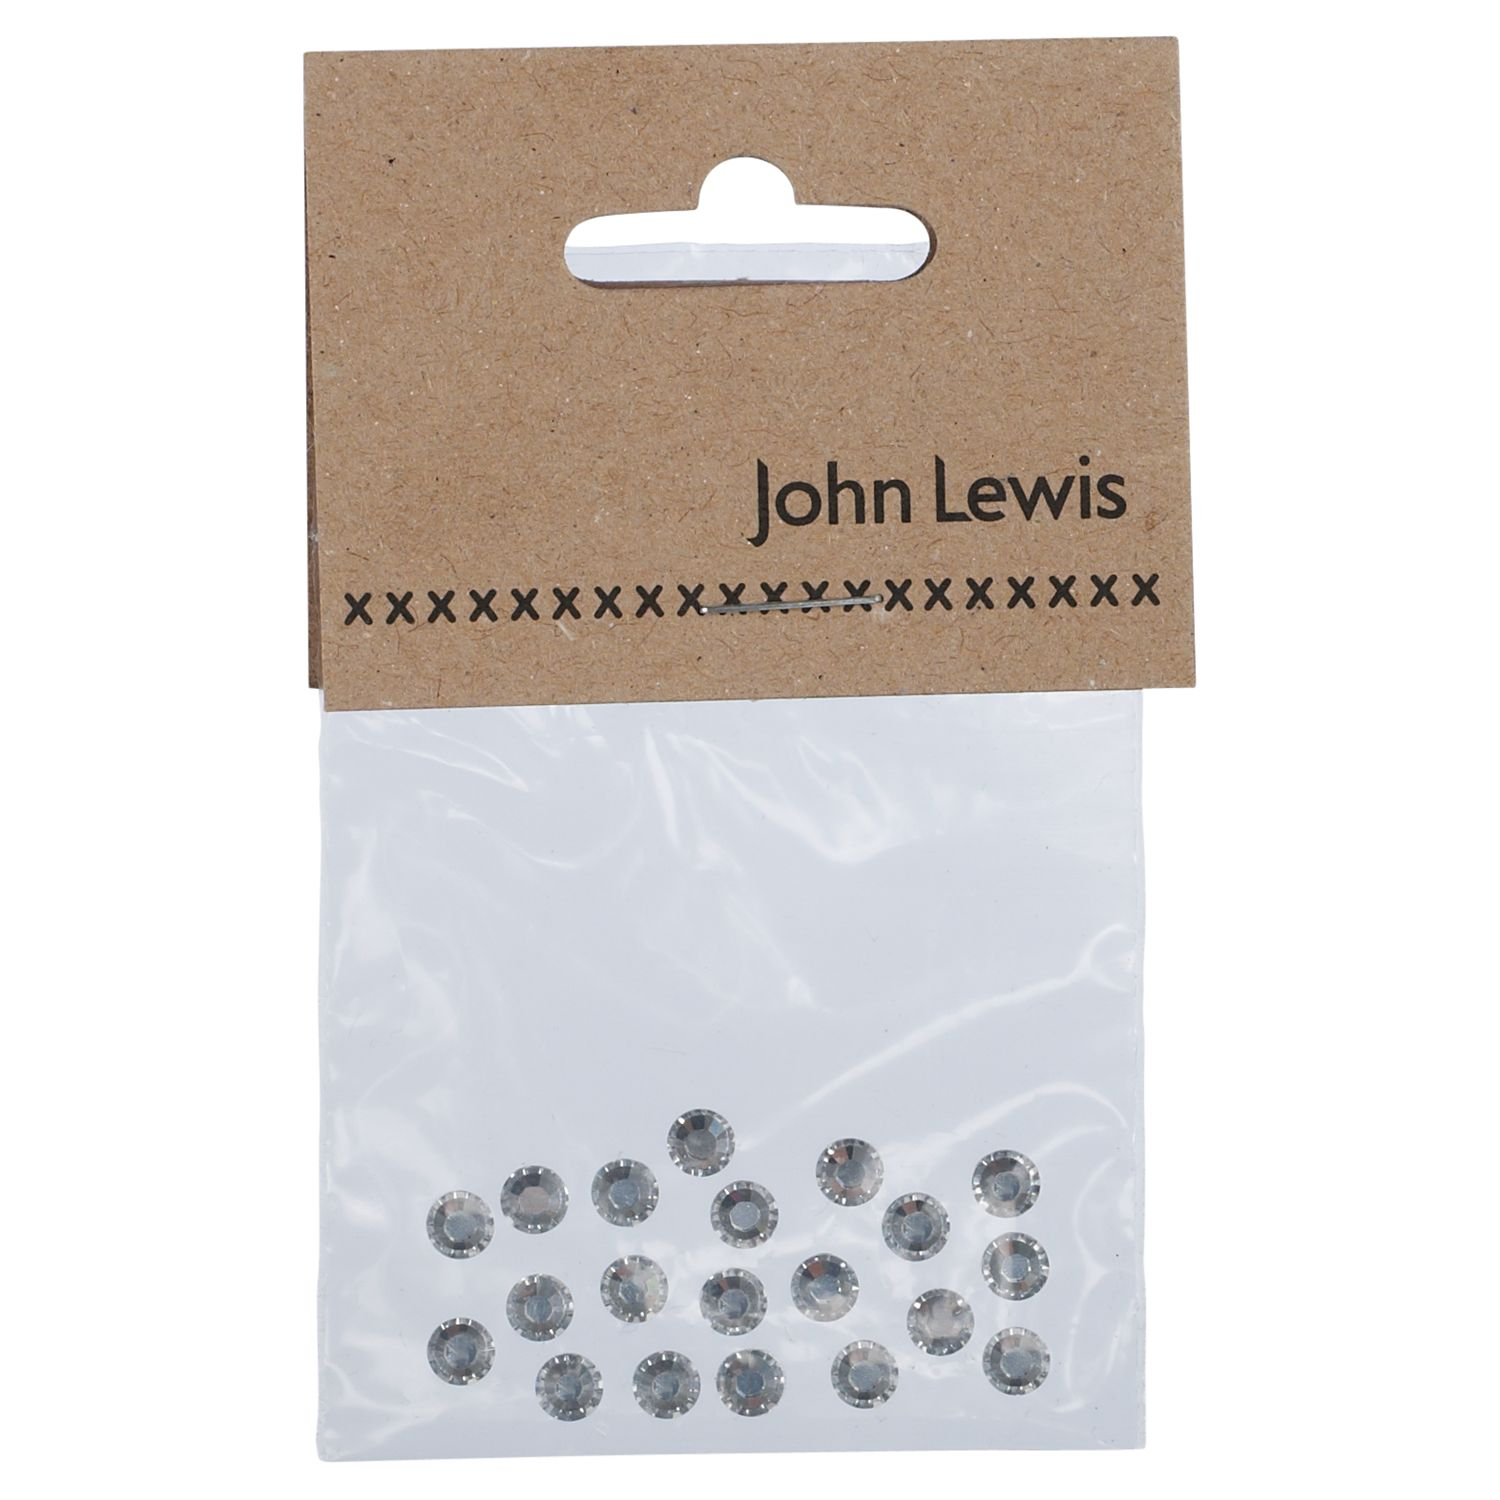 John Lewis Swarovski 5mm Hotfix Crystals, Pack of 20, Clear